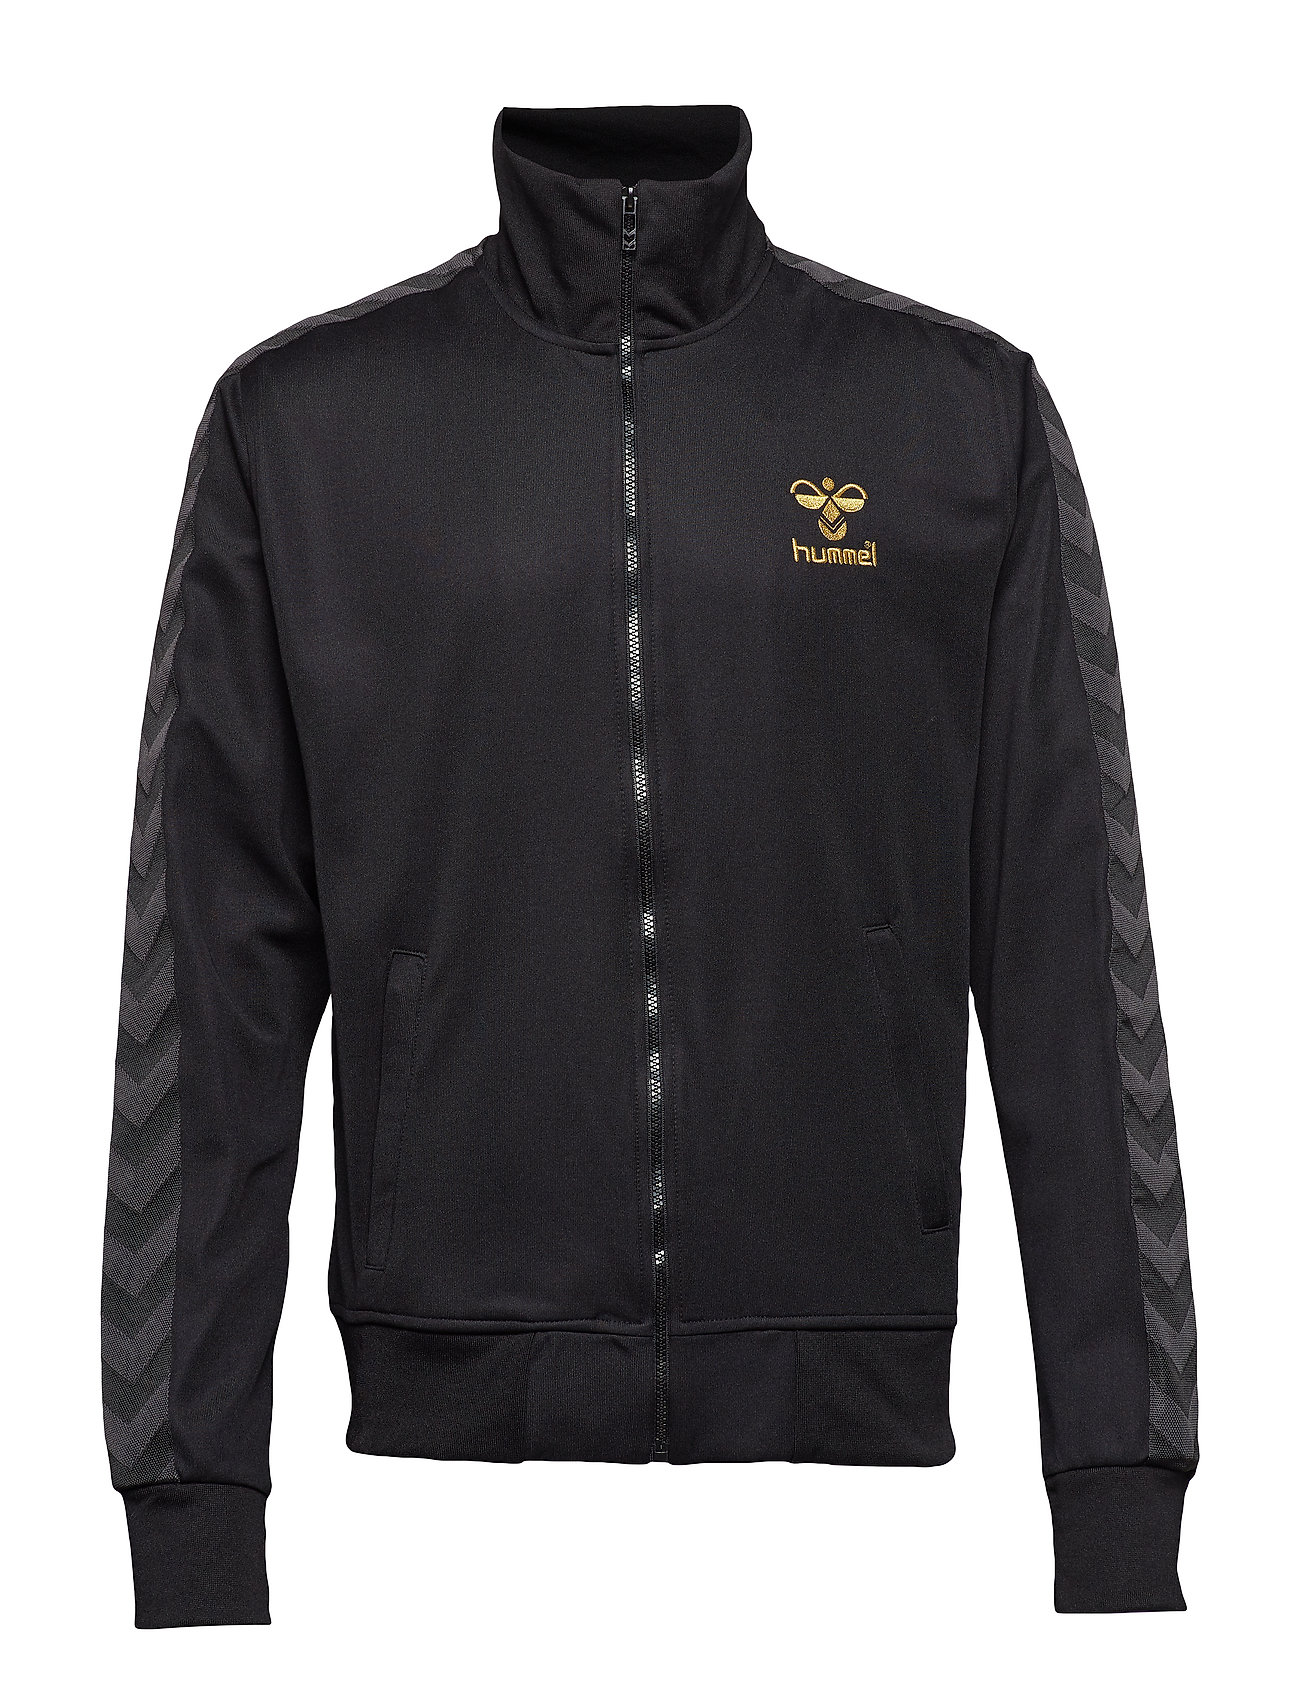 goldHummel Zip Jacket Atlantic Nblack goldHummel Atlantic Zip Nblack Jacket oWEBCQrdxe